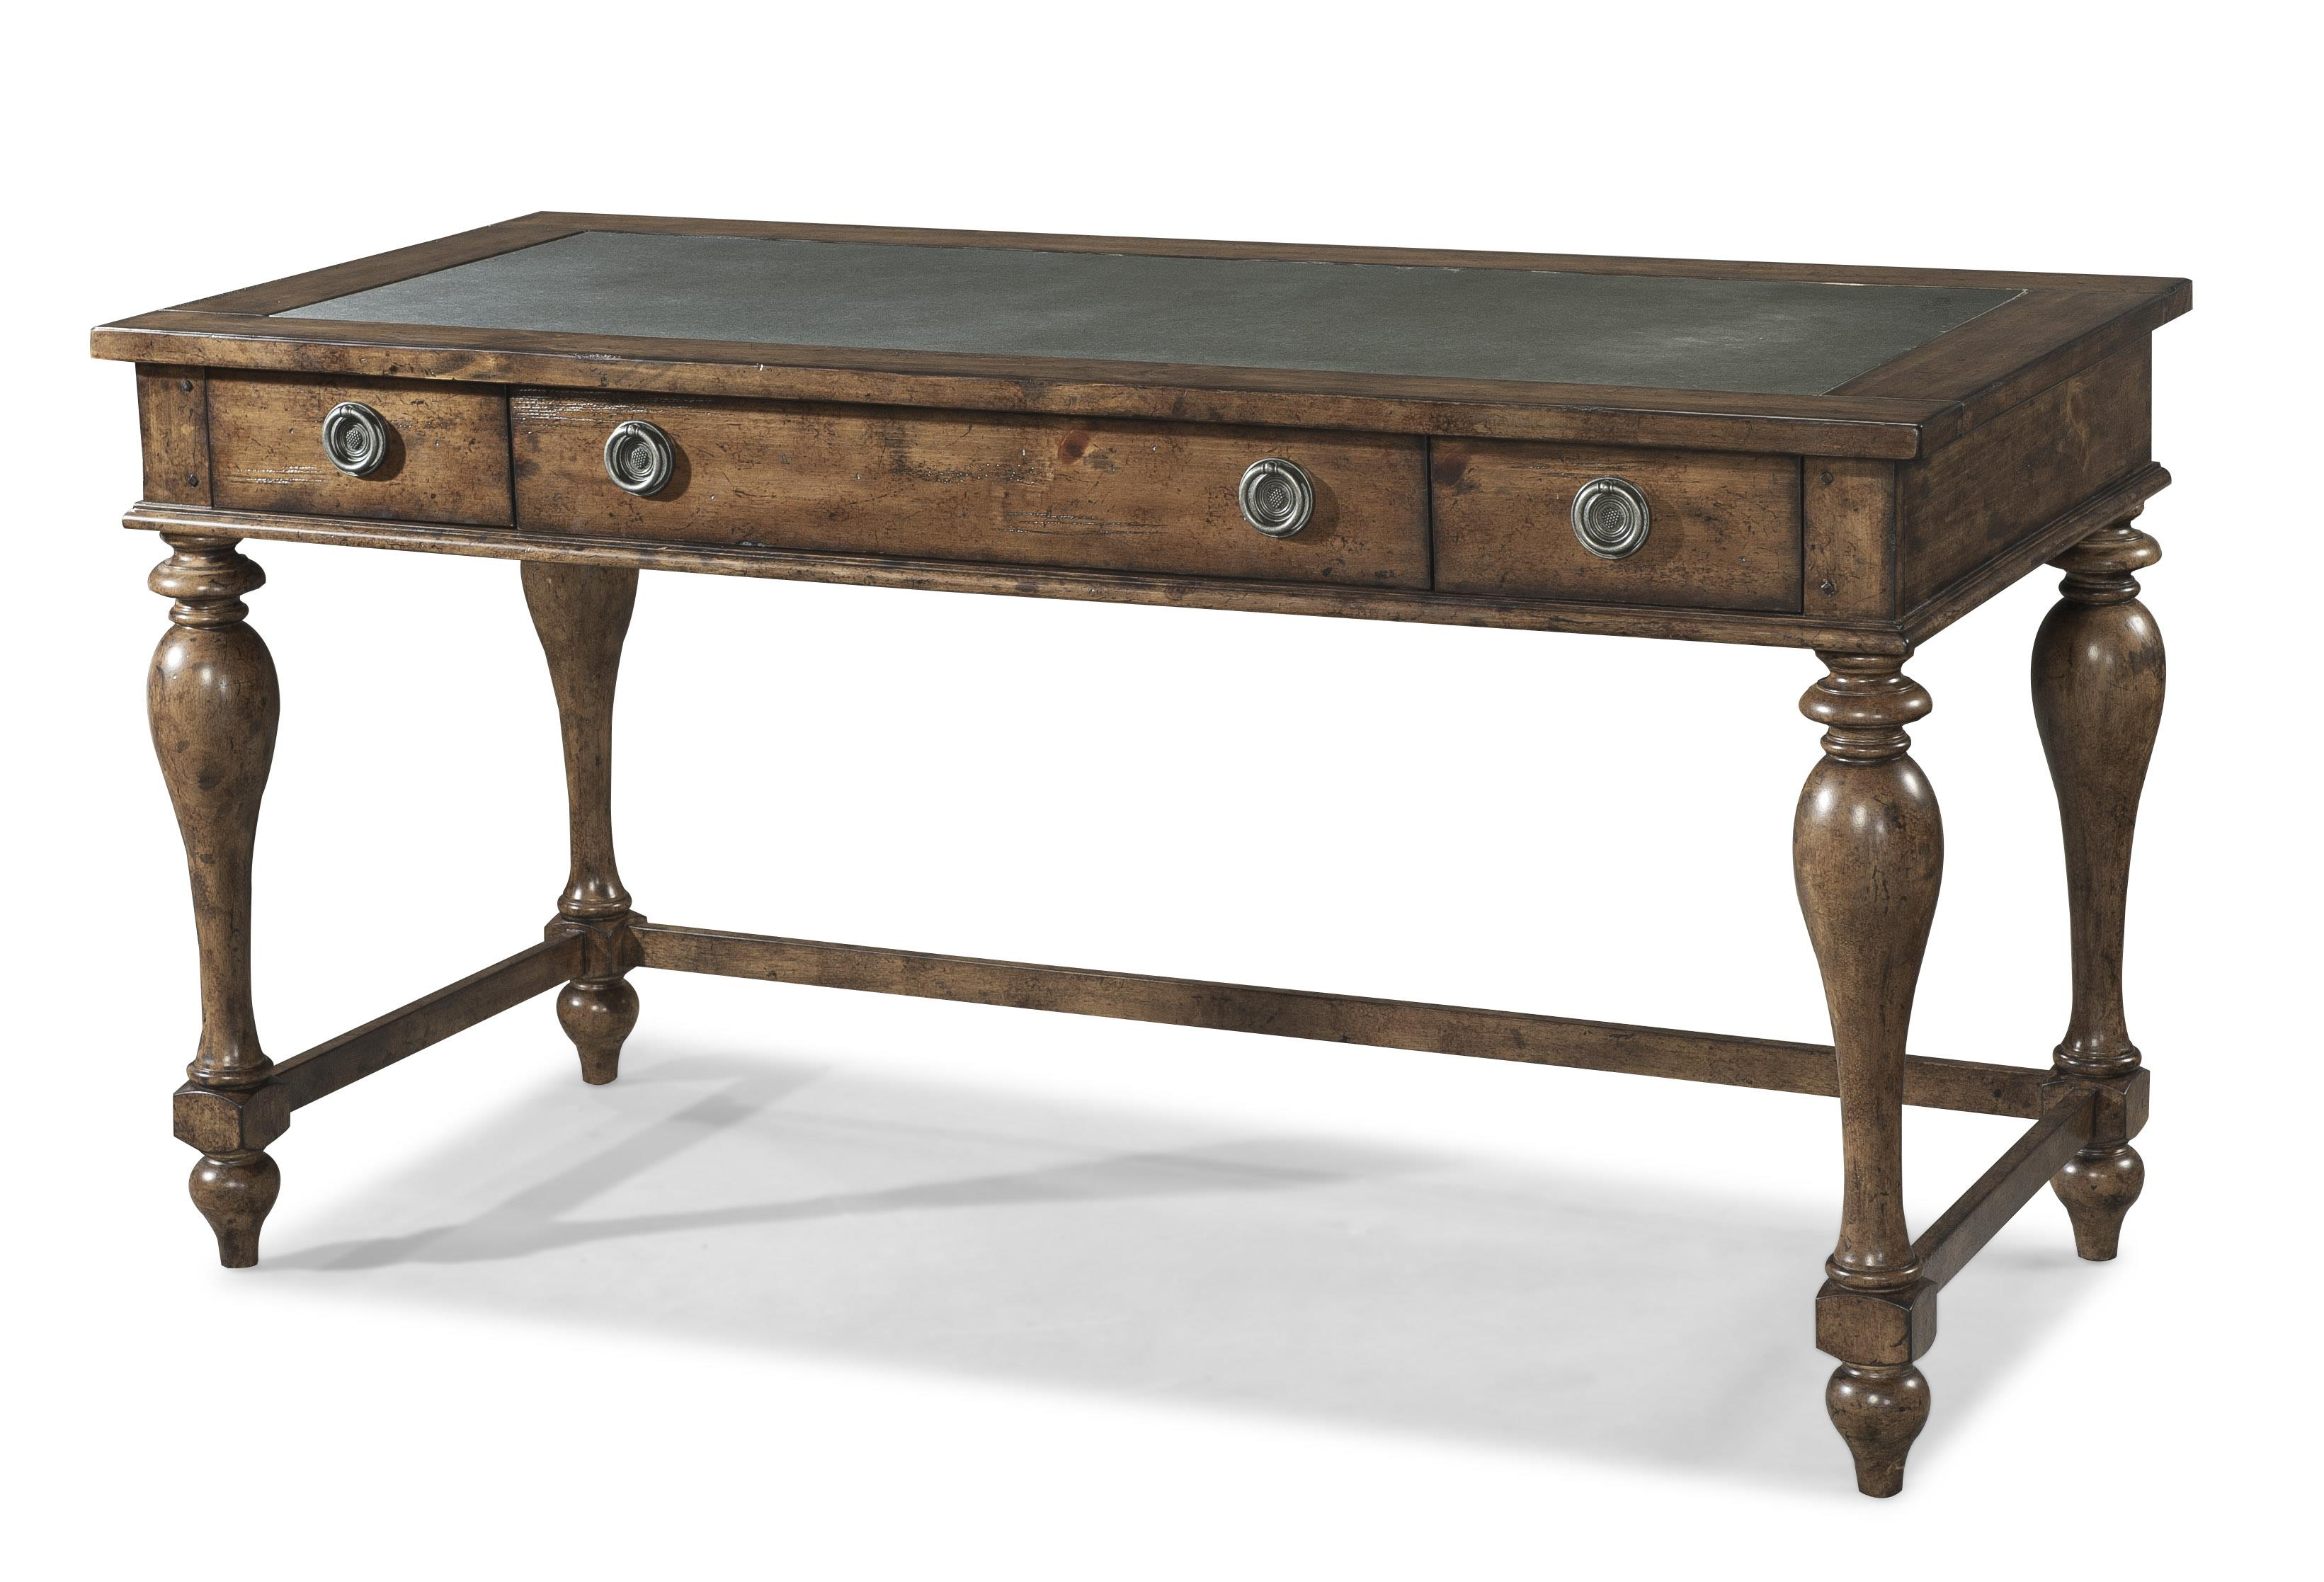 Elliston Place Willow Creek Willow Creek Desk - Item Number: 244905428